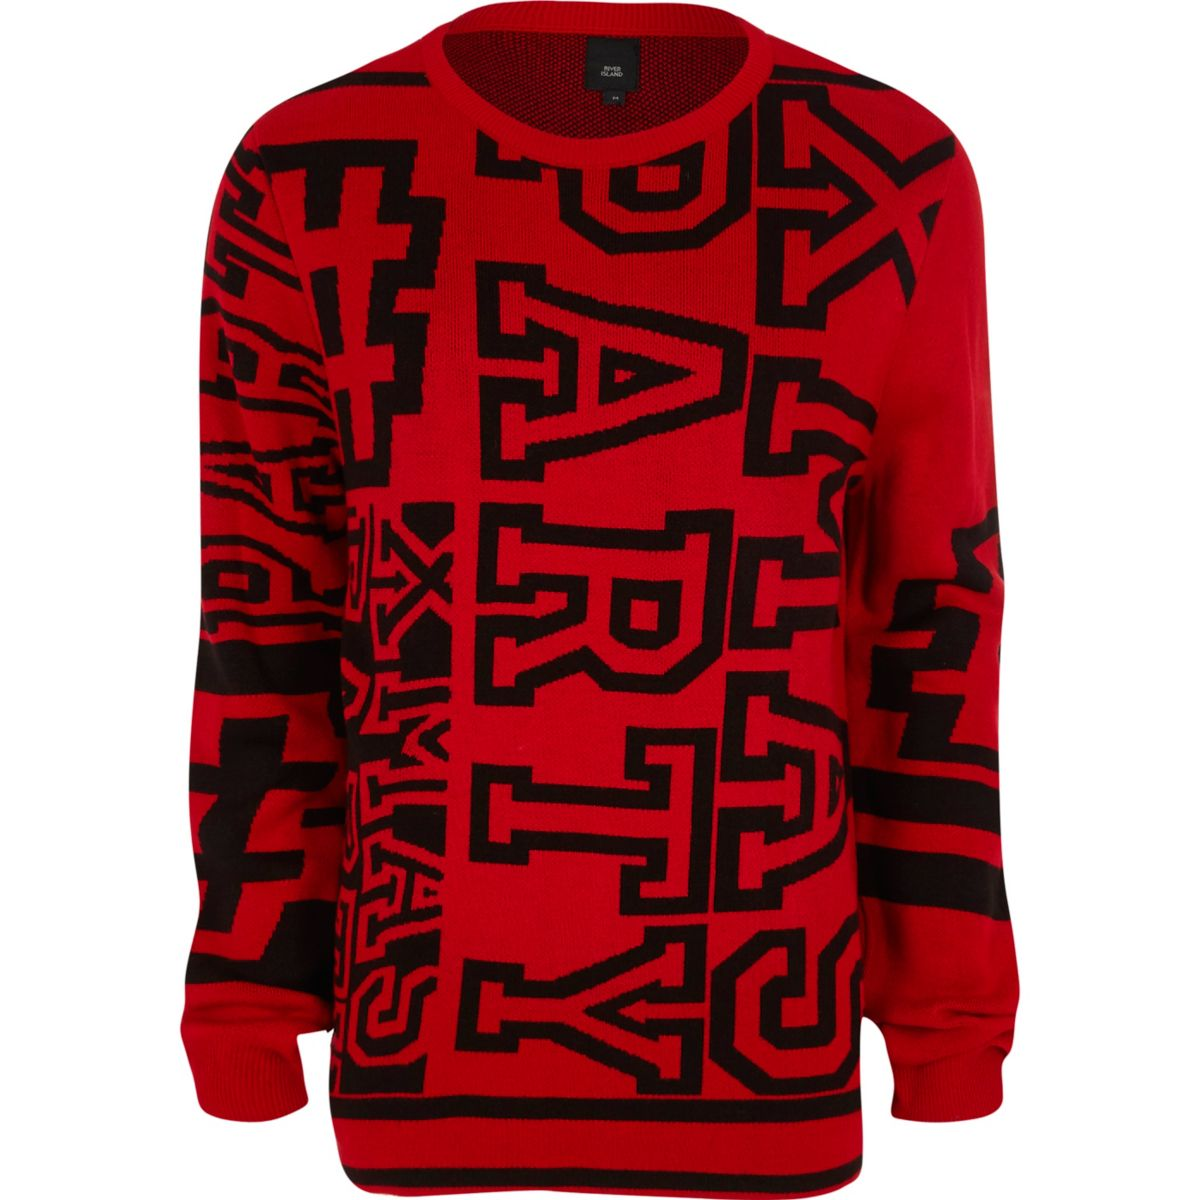 Red 'xmas party' Christmas sweater